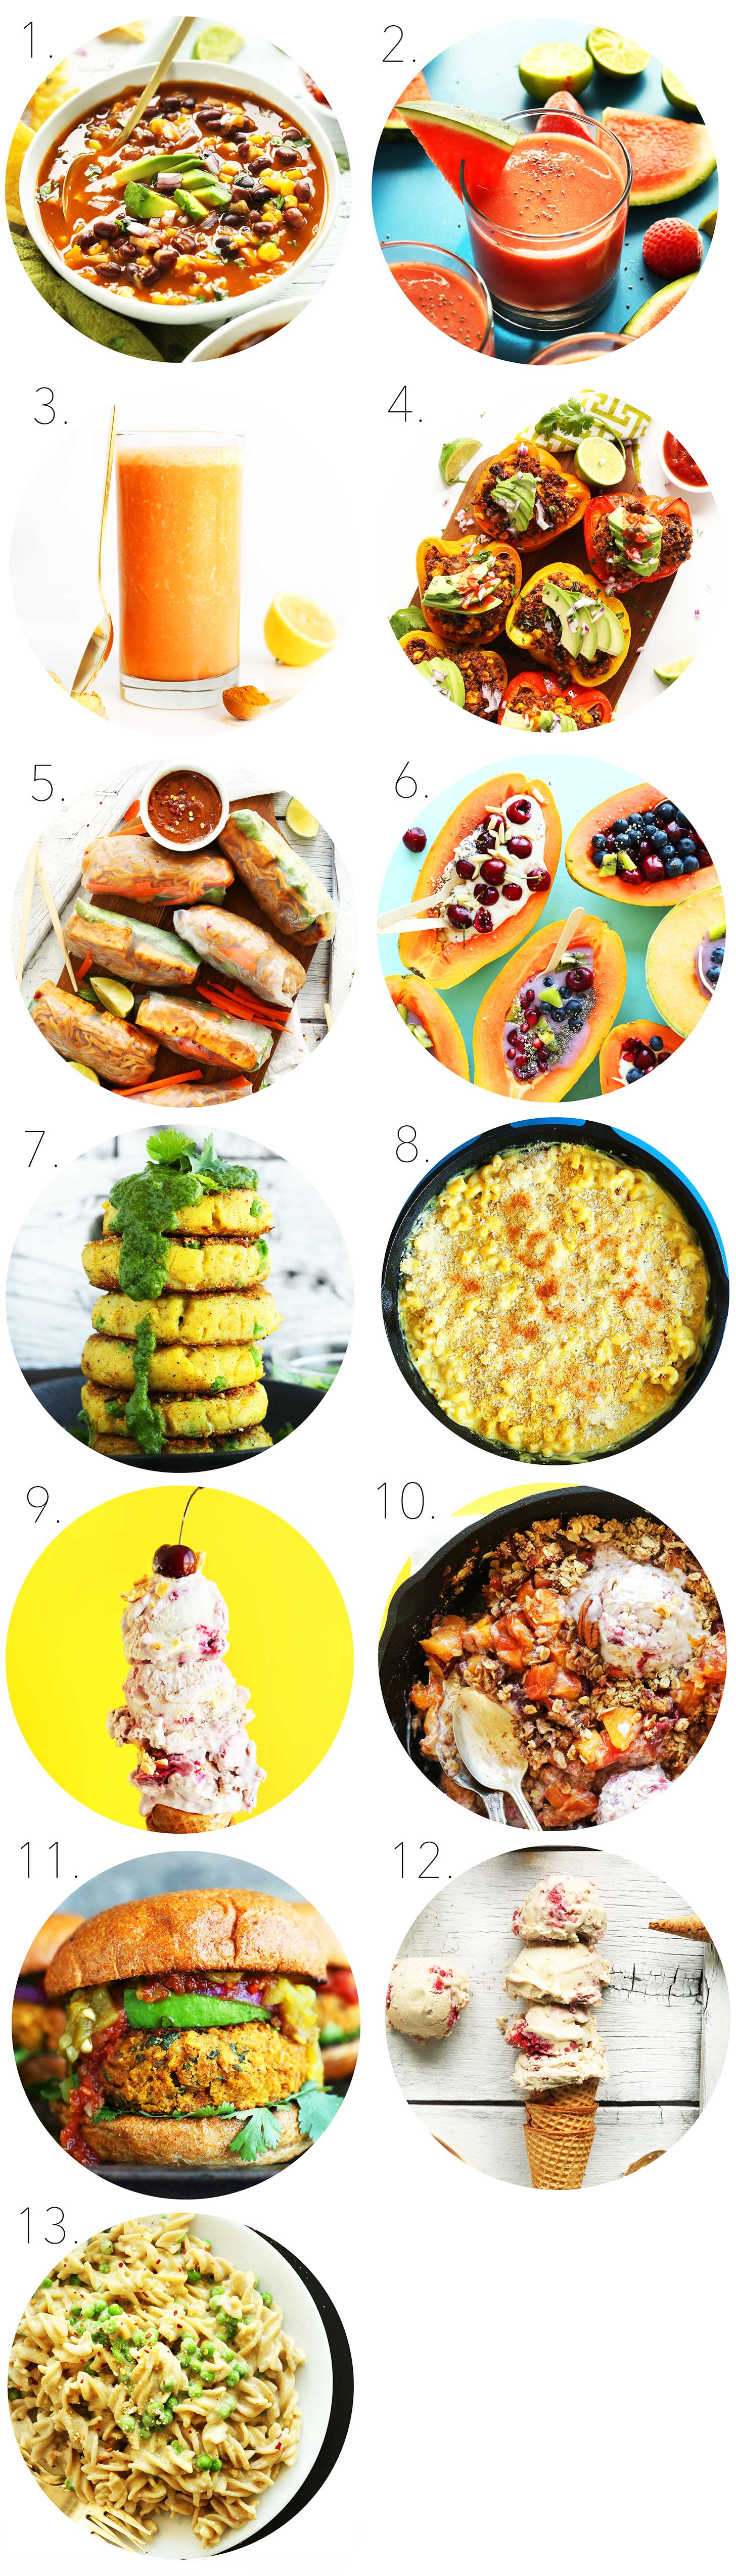 Collection of food photos for our June Recipe Roundup